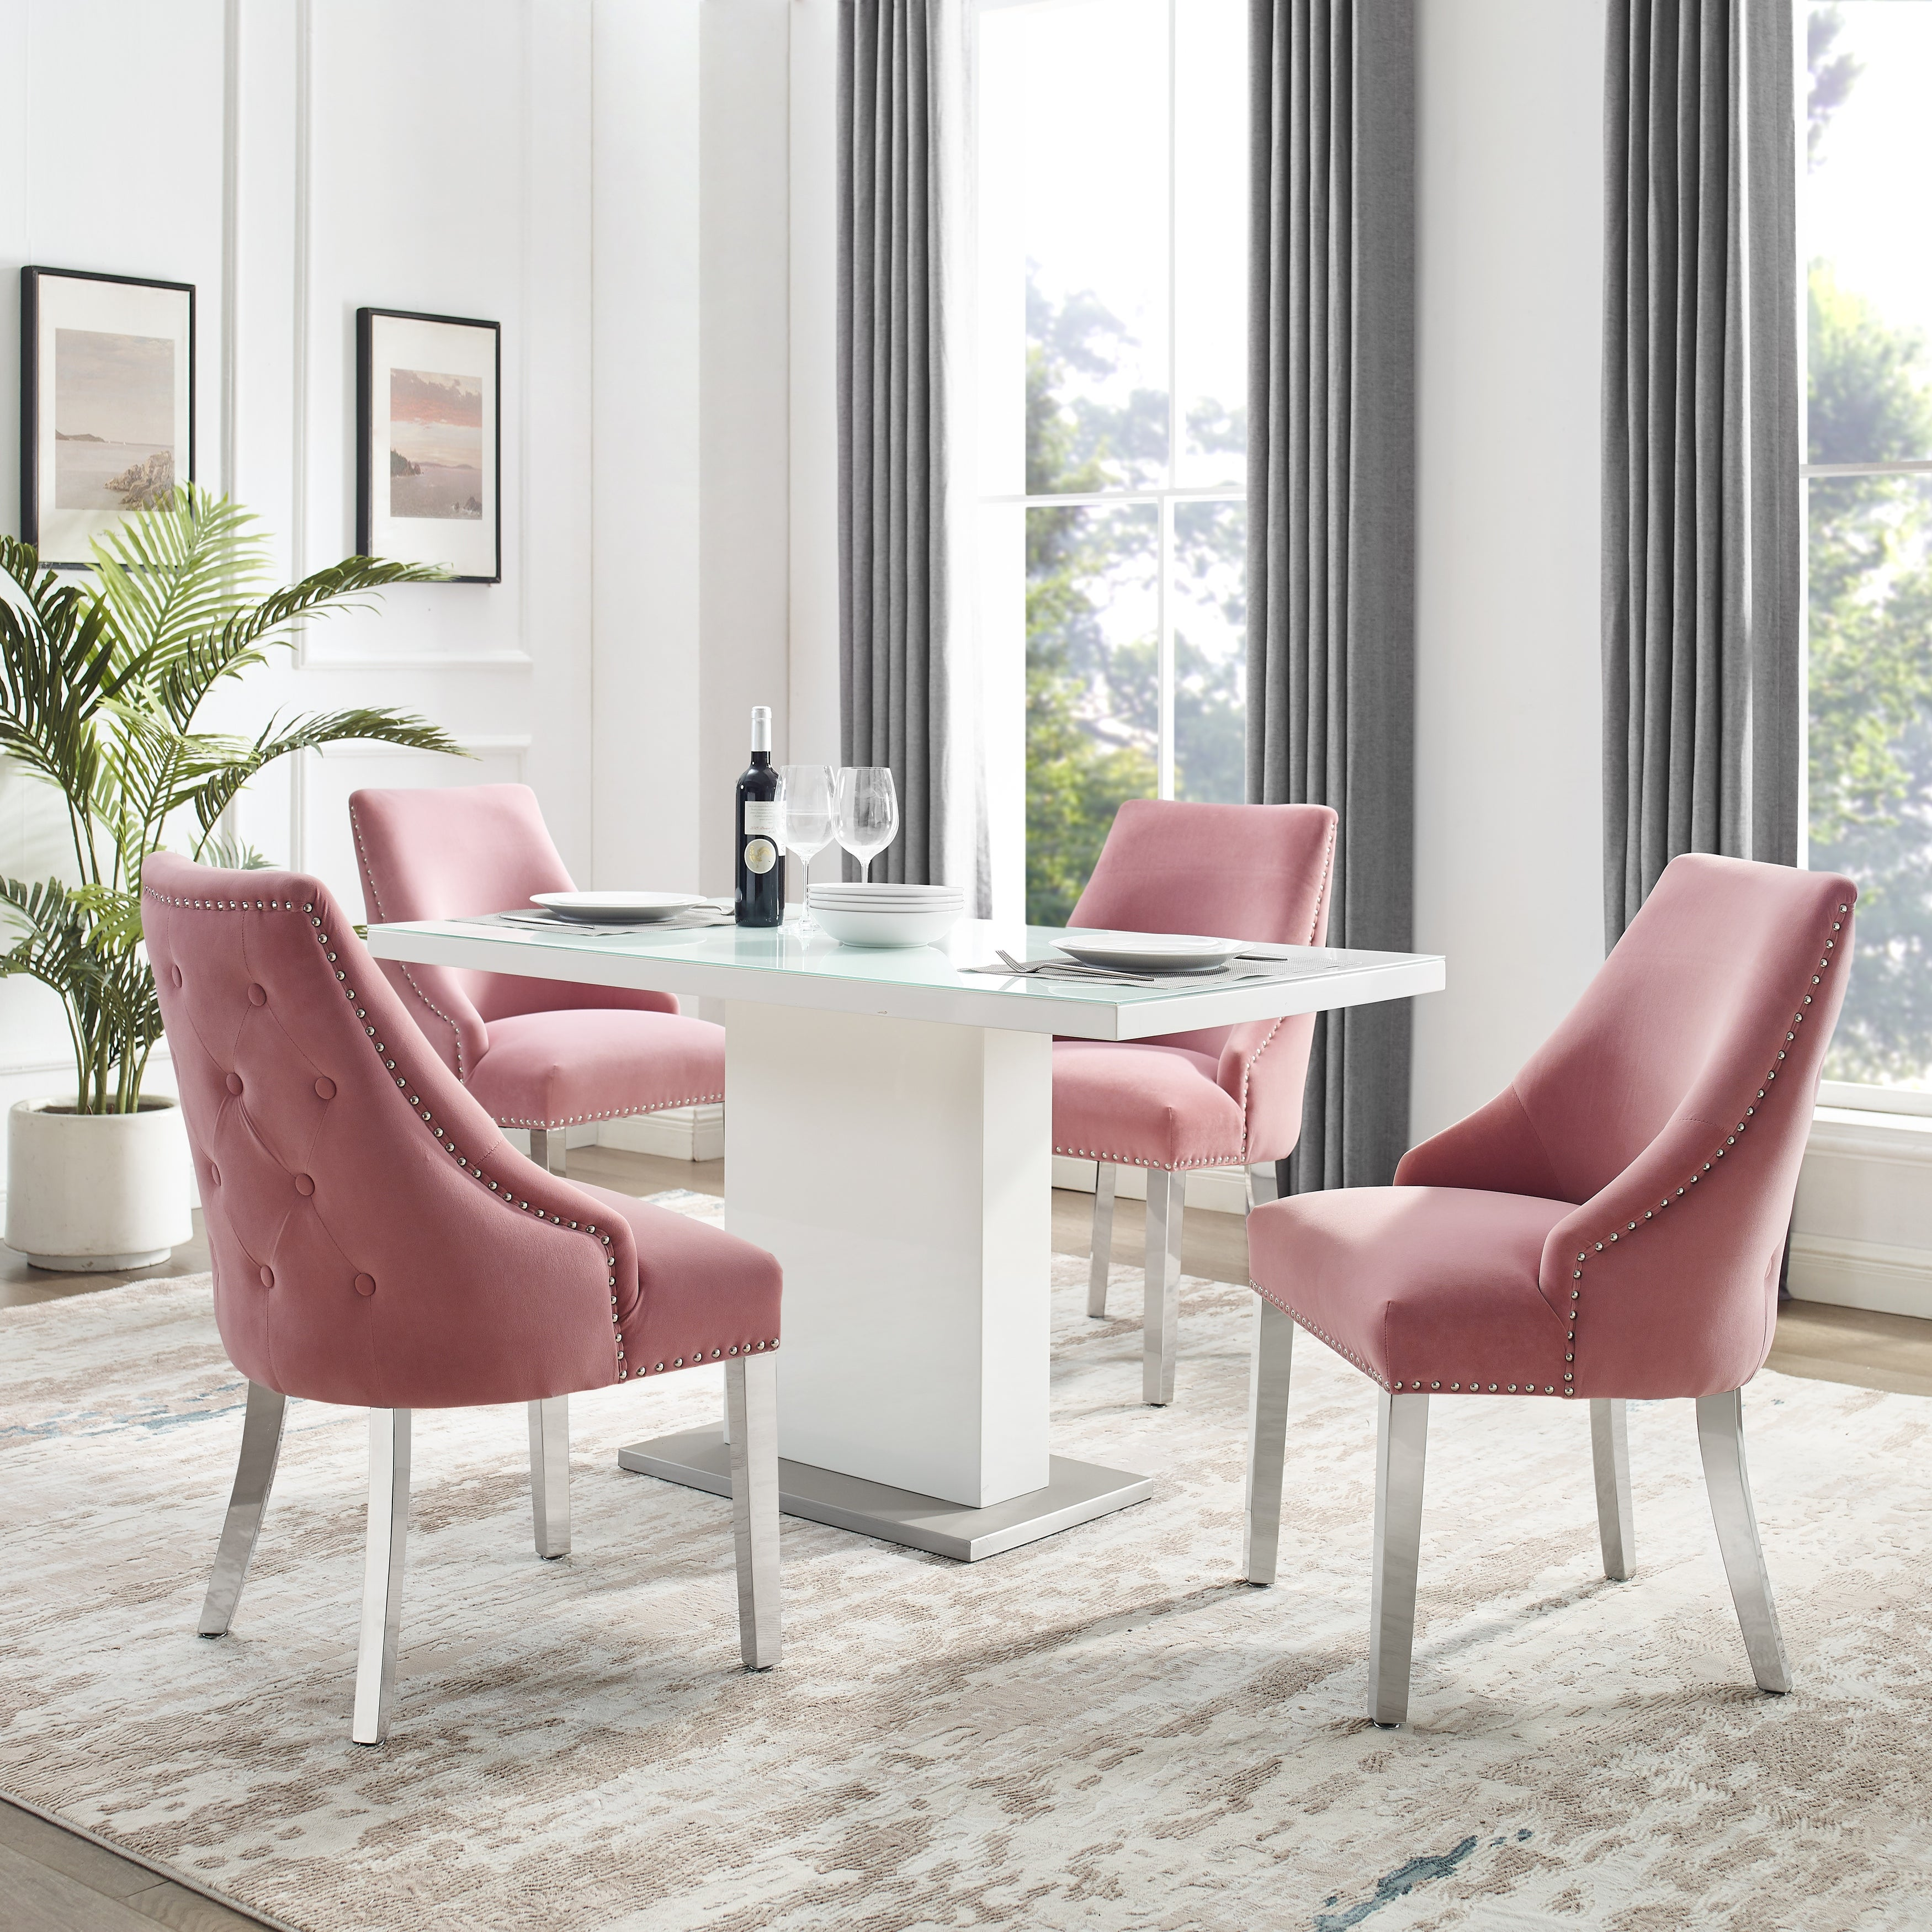 Braff Velvet Tufted High Back Dining Chairs By Corvus Set Of 2 On Sale Overstock 31509969